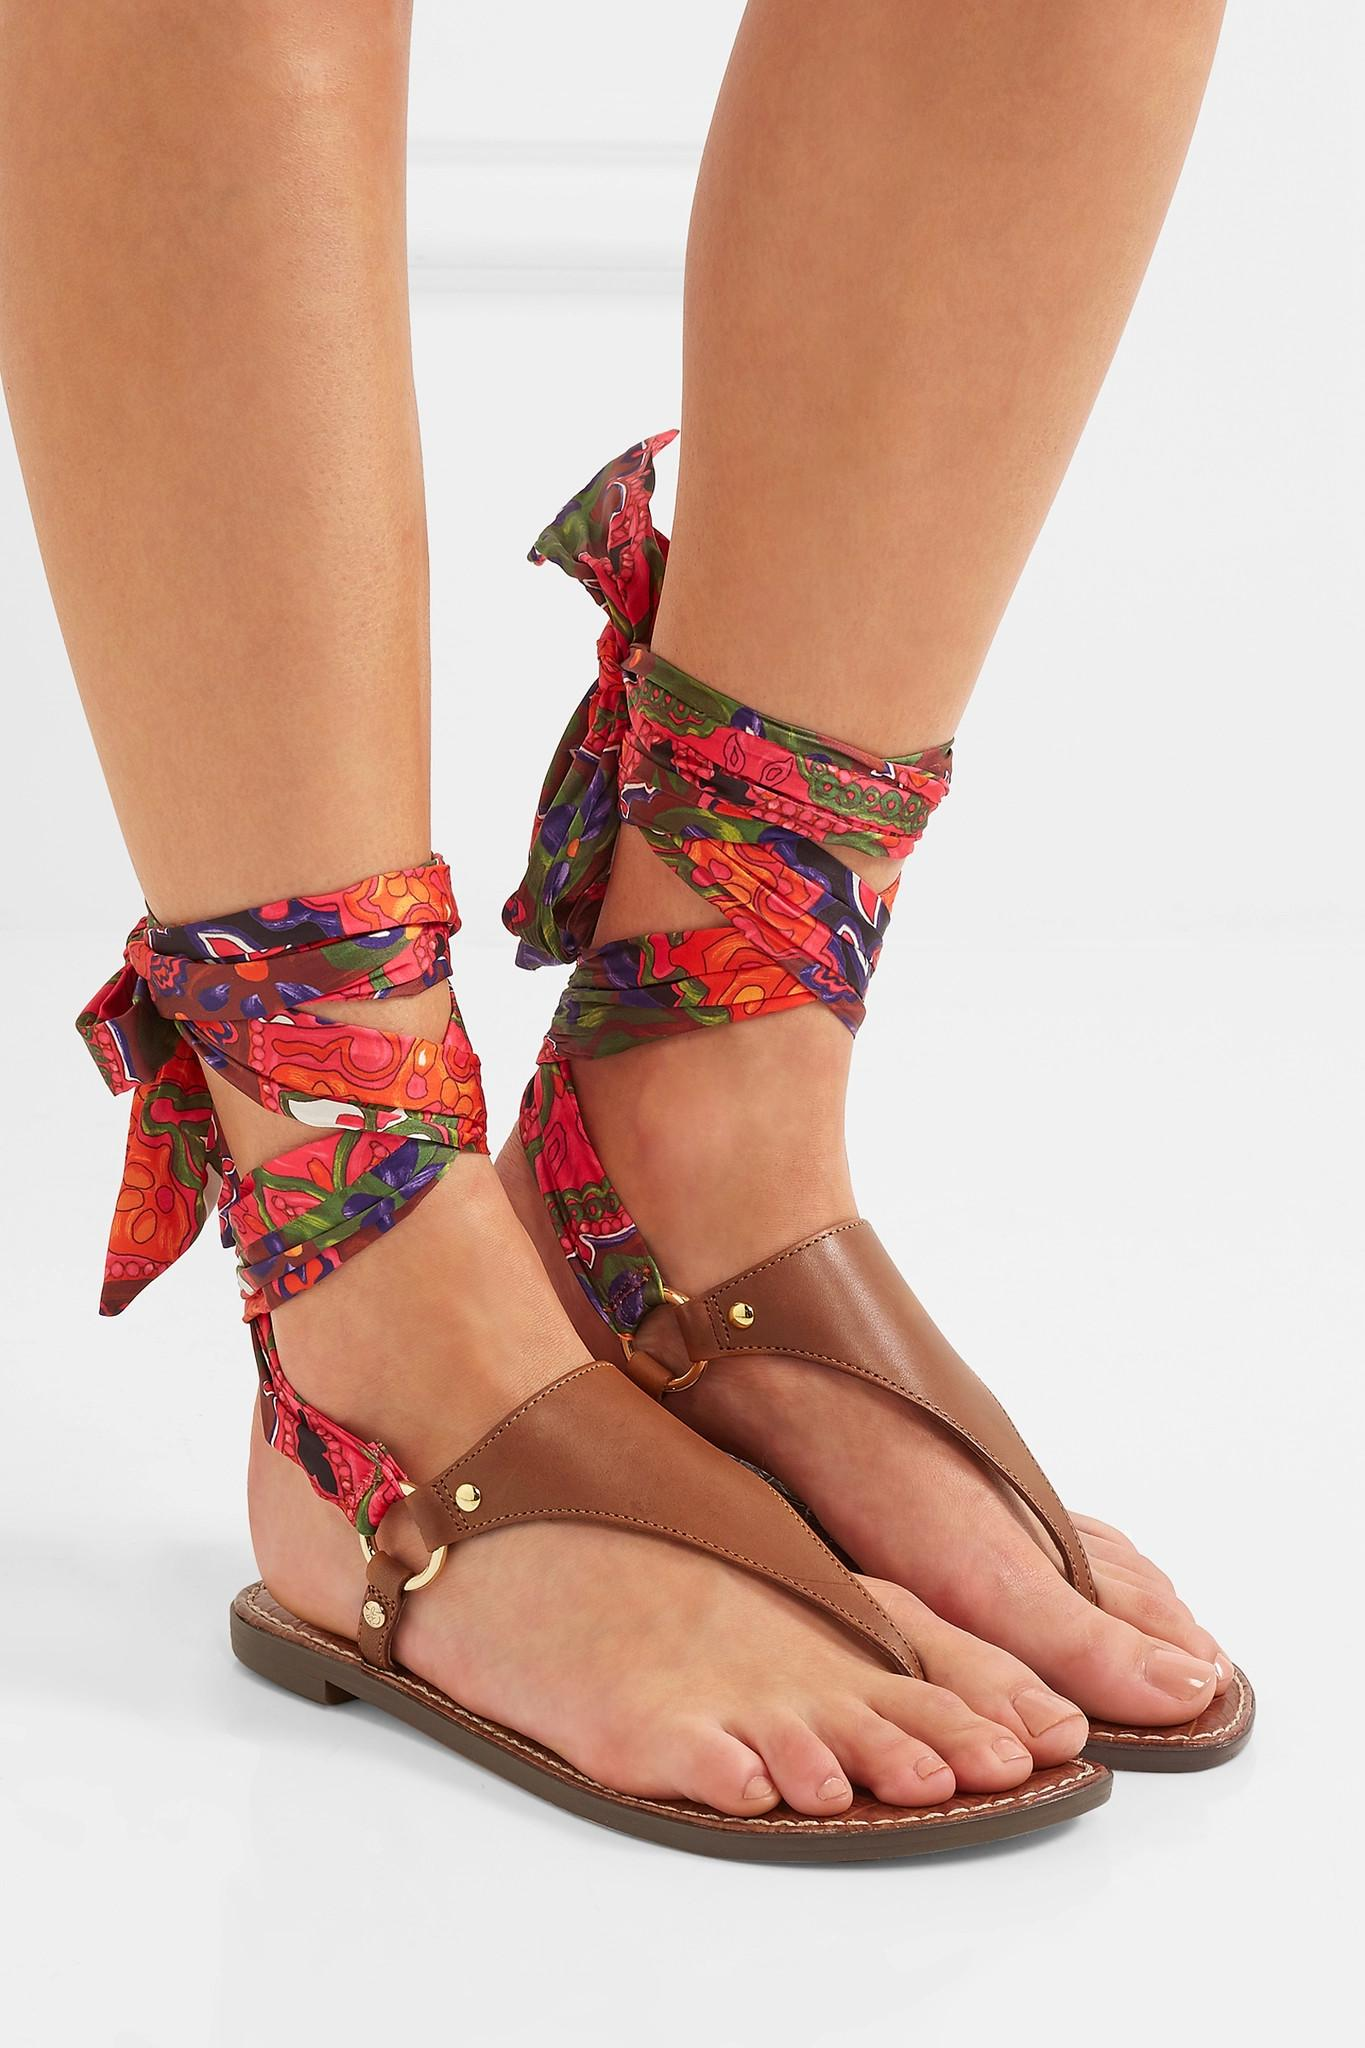 e94a88c83f12d0 Lyst - Sam Edelman Giliana Leather And Printed Satin Sandals in Brown